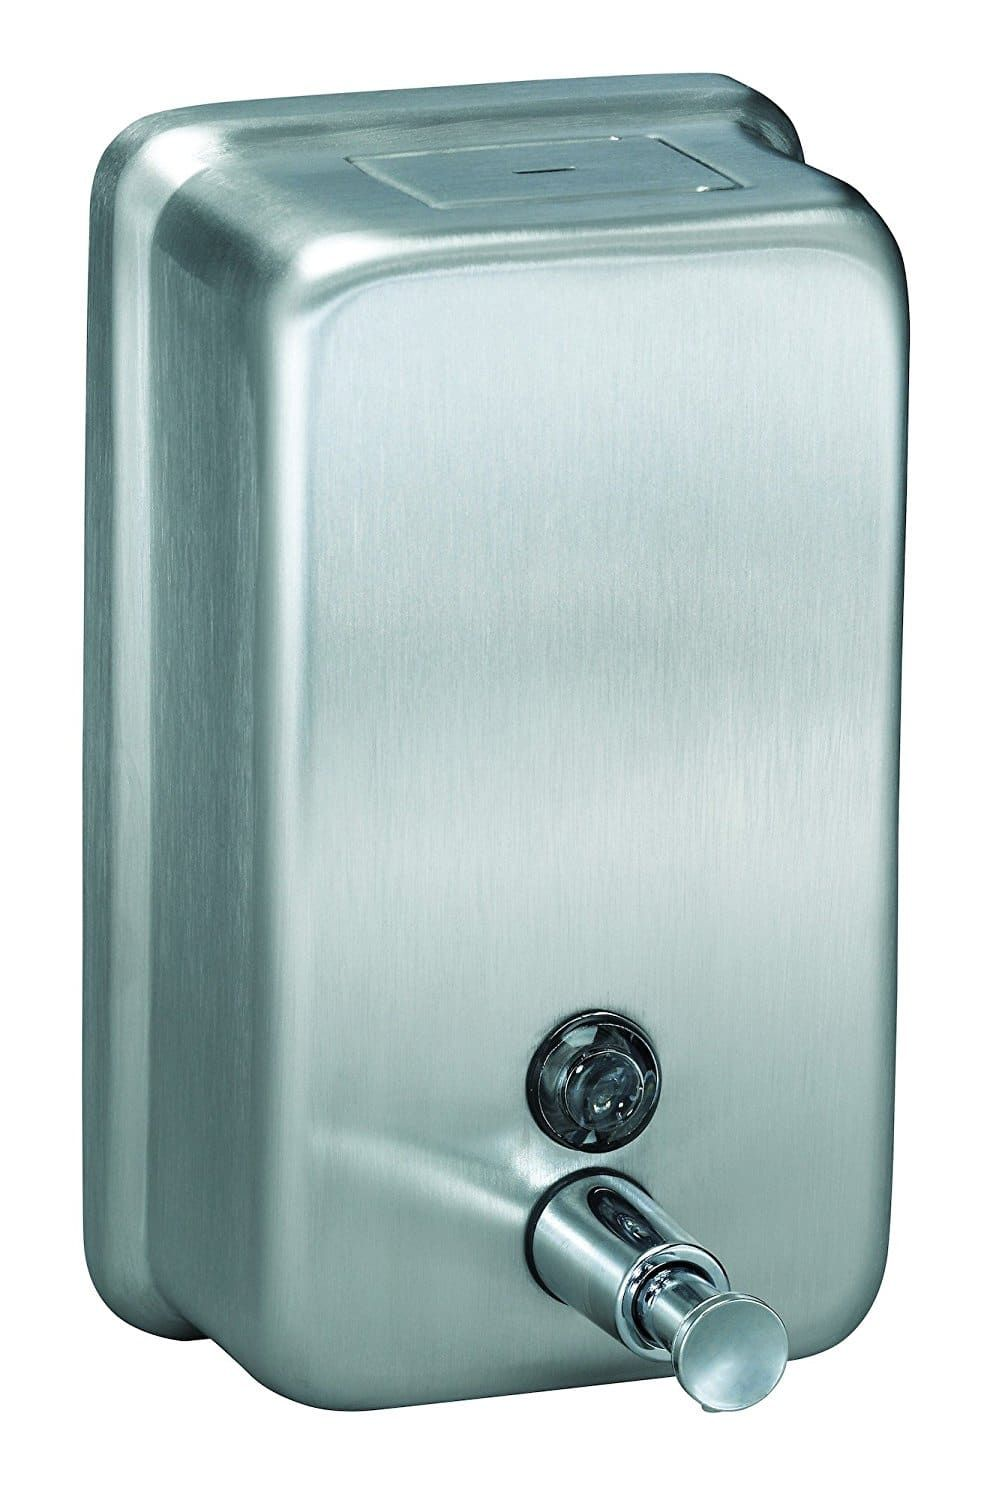 Top 10 Best Soap Dispensers In 2020 Reviews Wall Mounted Soap